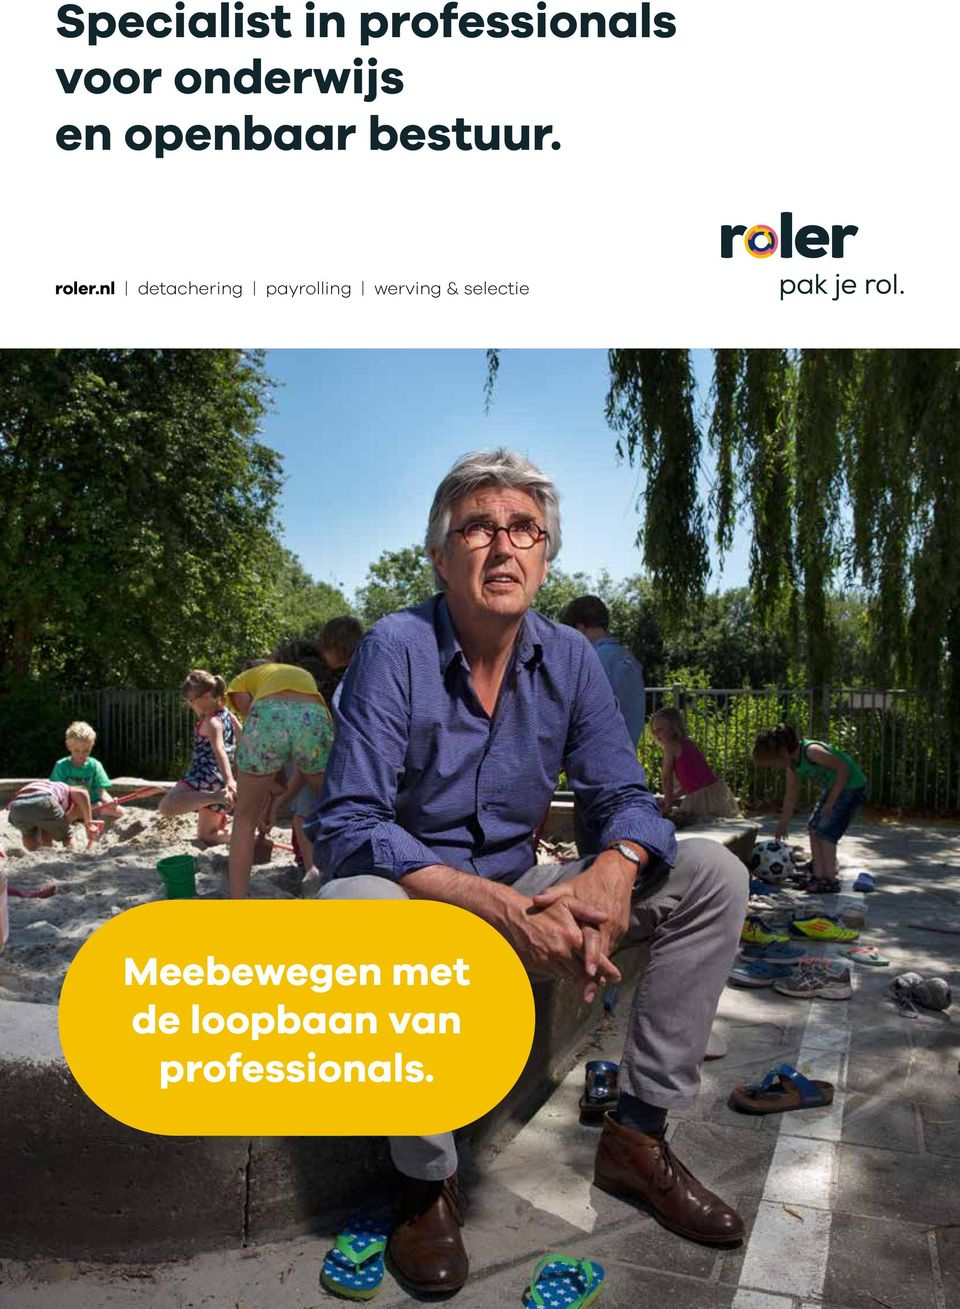 nl detachering payrolling werving &